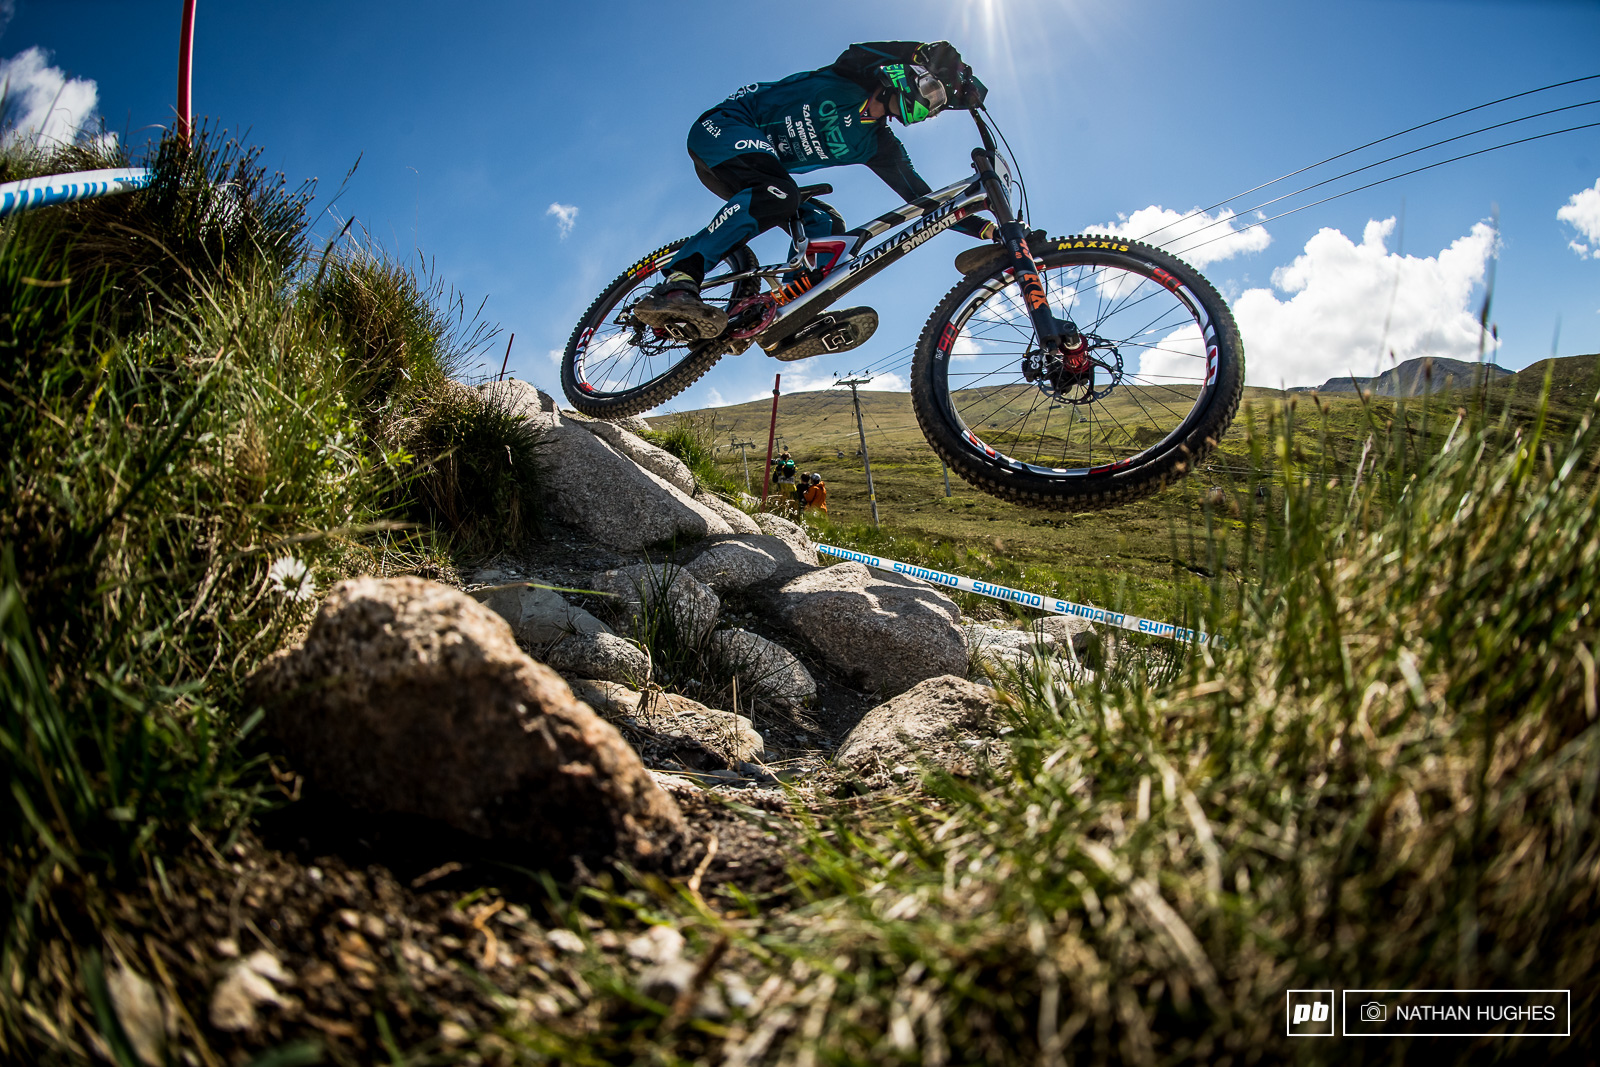 Greg Minnaar has taken a simply unbelievable 6 of the available 15 victories here at Fort William. You d be bat sh t mental to think he won t be able to do it again.